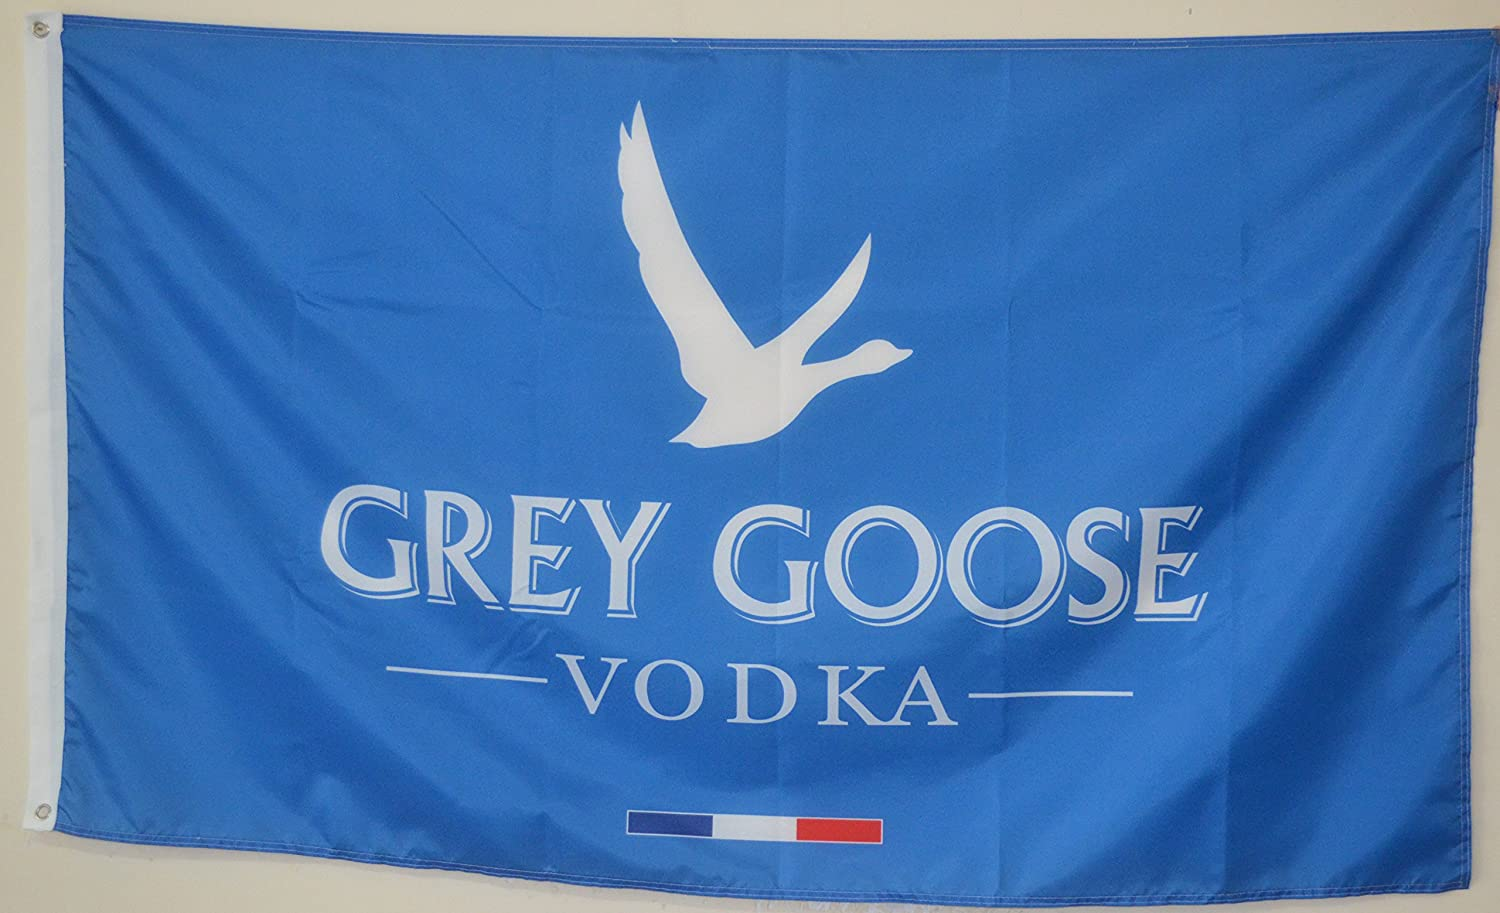 2But Grey Goose Vodka France Flag Banner 3x5 Feet Man Cave